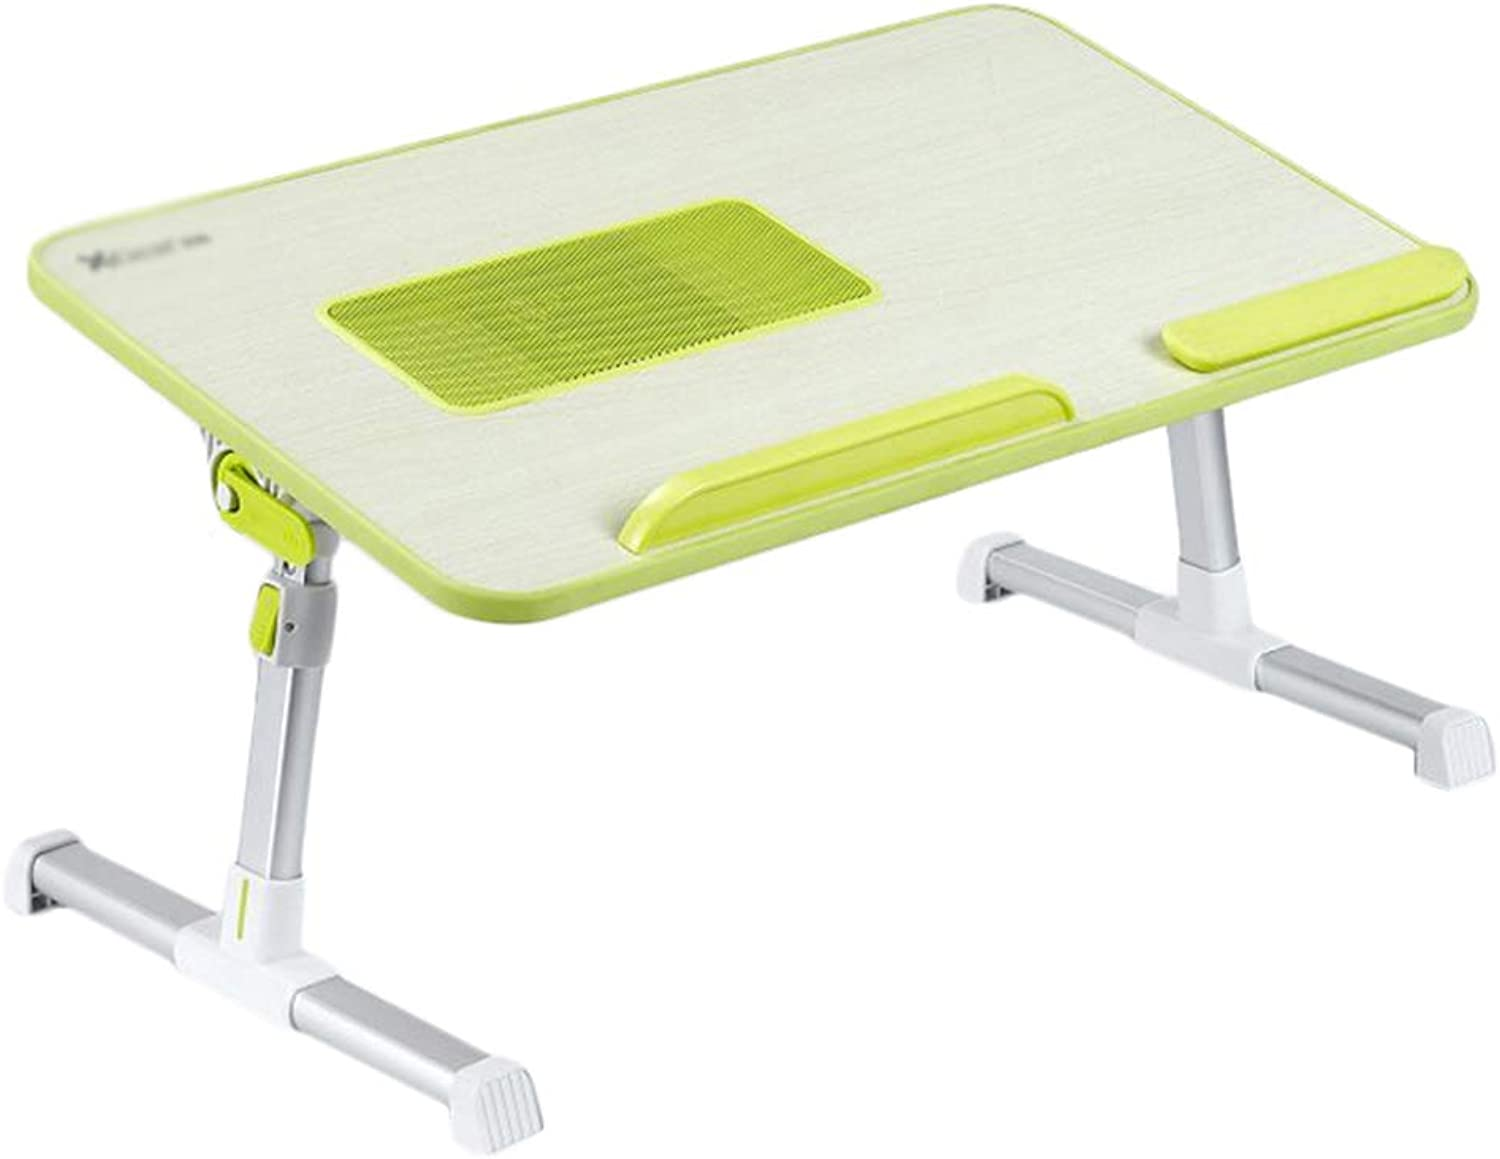 HAIPENG Small Bed Table Laptop Desk with USB Fan Height Adjustable Foldable Portable Dormitory, 3 colors, 52x30cm (color   Green)